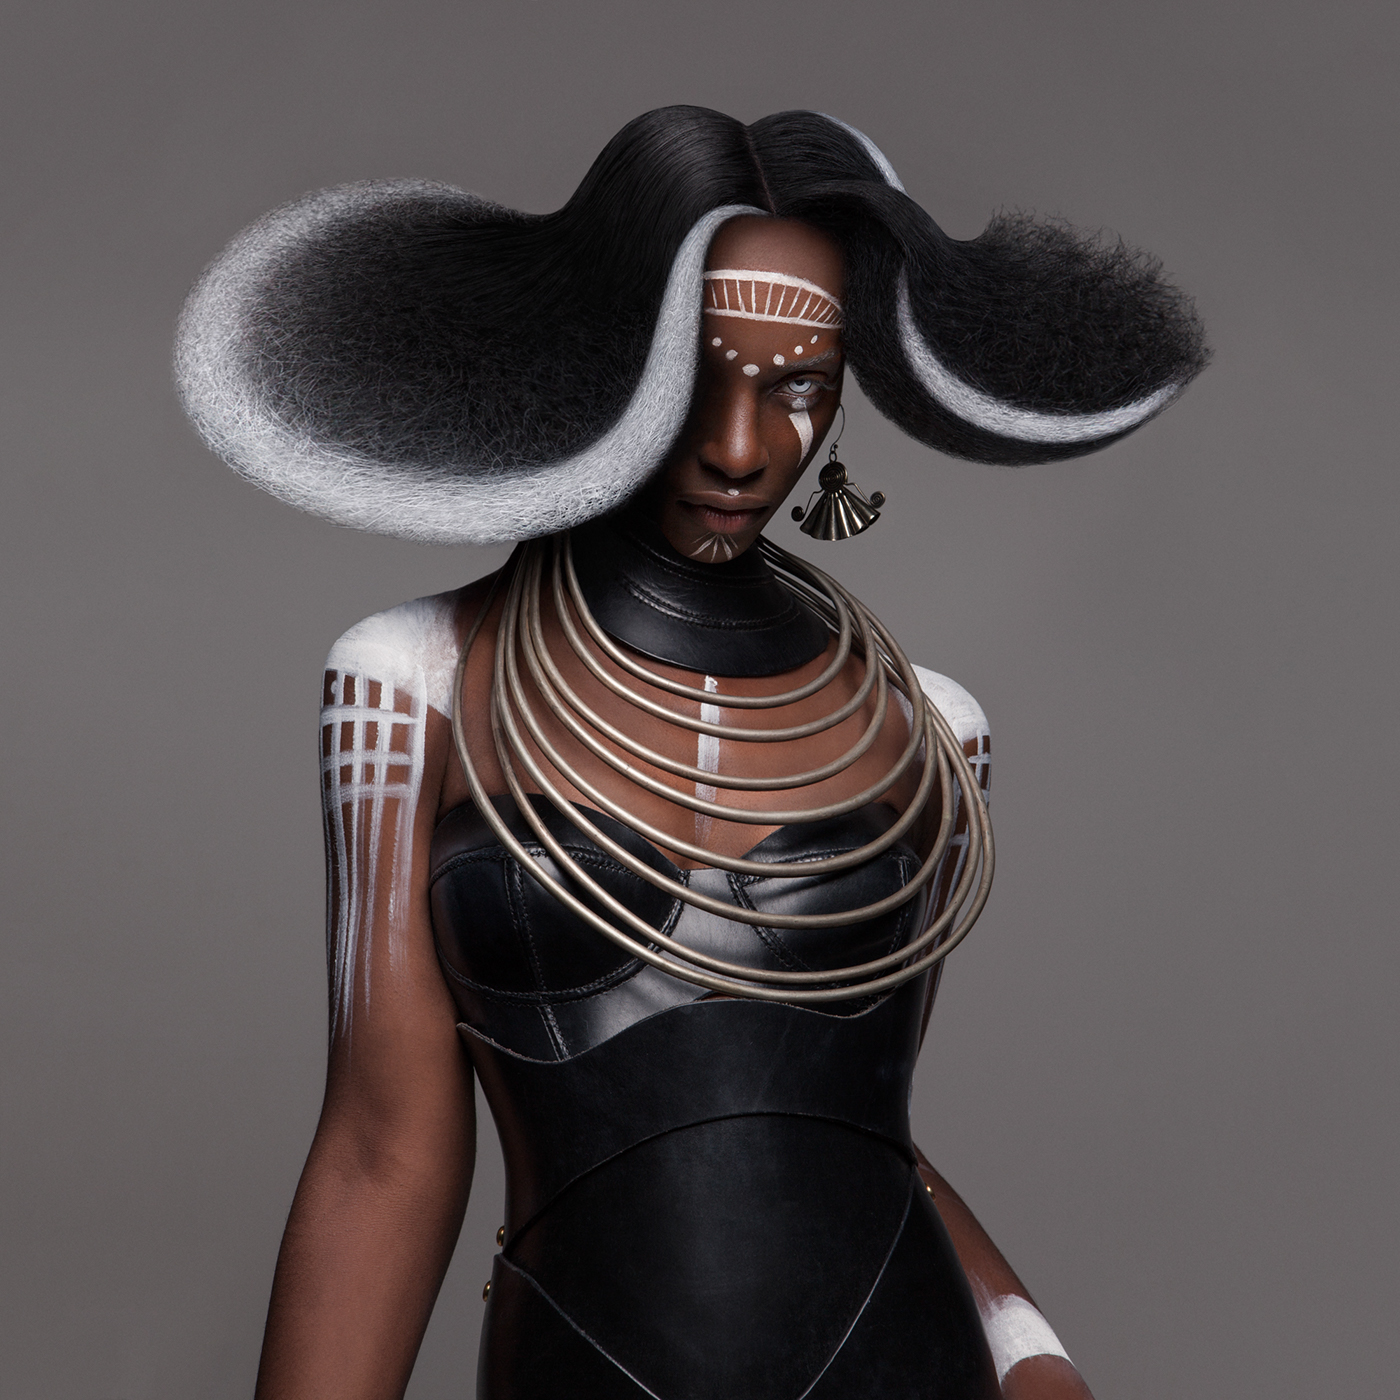 British Hair Awards 2016 - Afro Finalist Collection / фото Luke Nugent